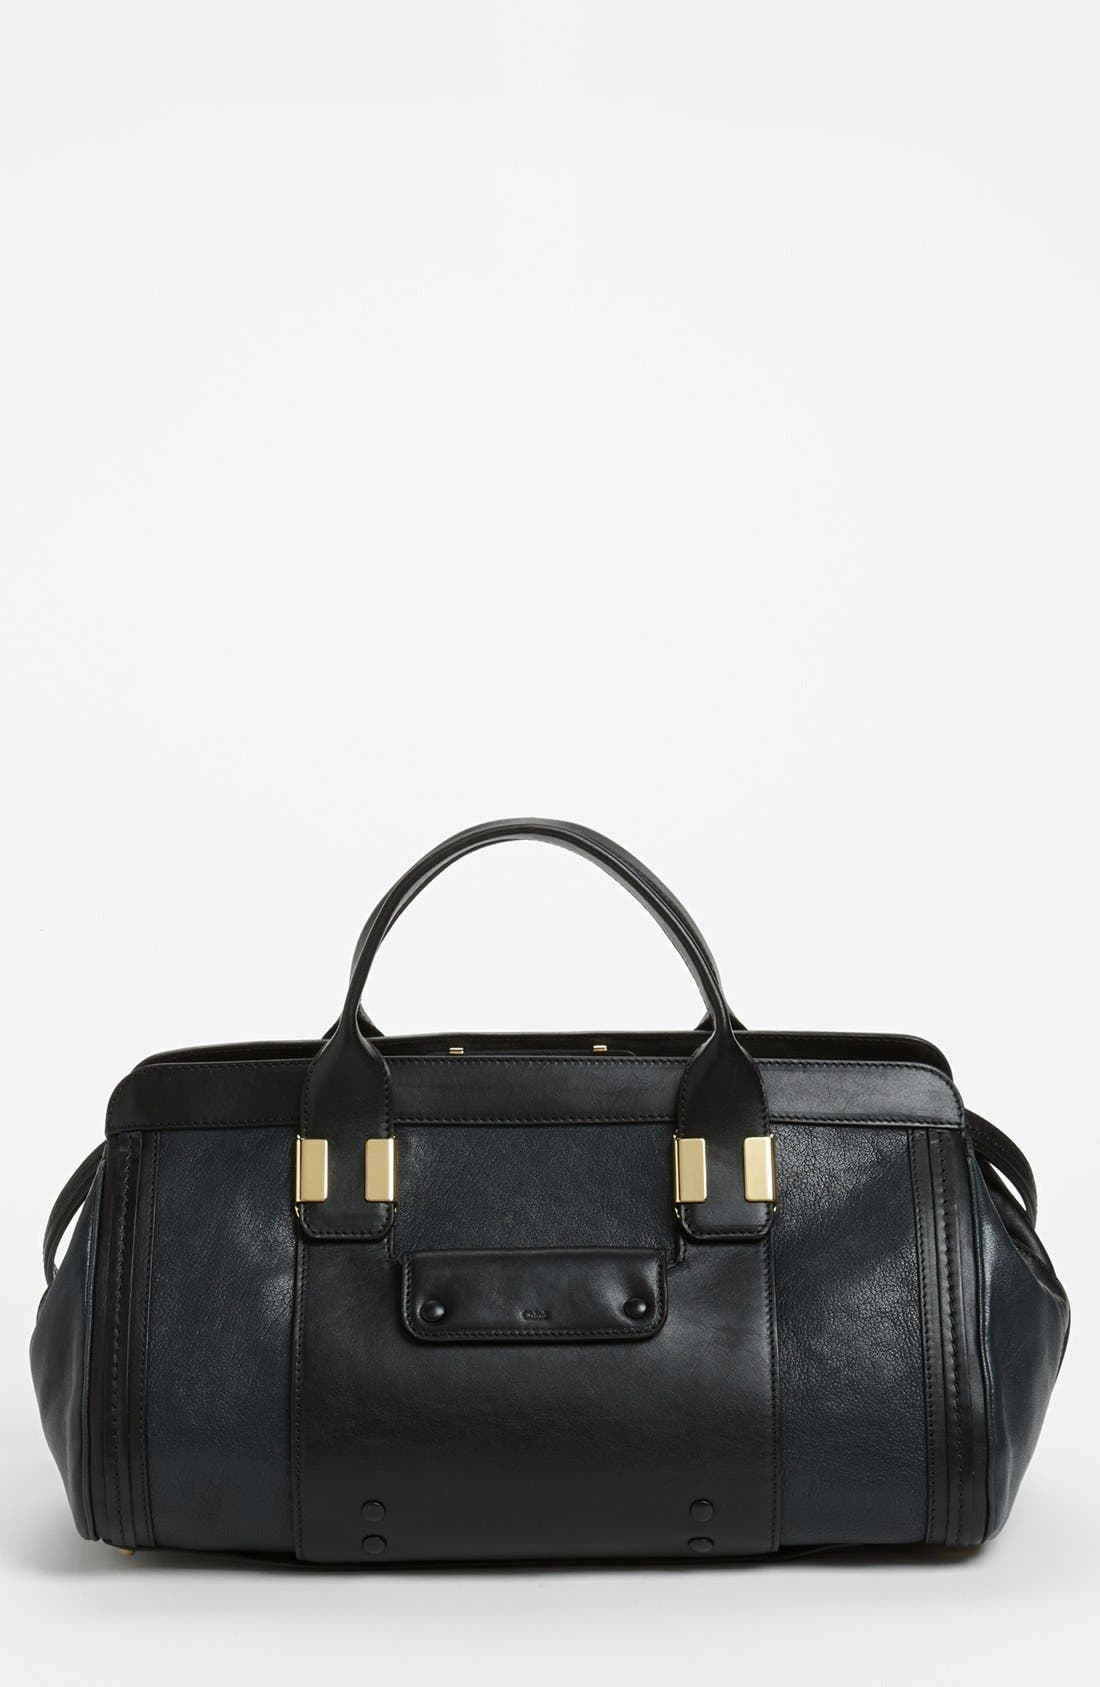 Alternate Image 1 Selected - Chloé 'Alice - Small' Leather Satchel